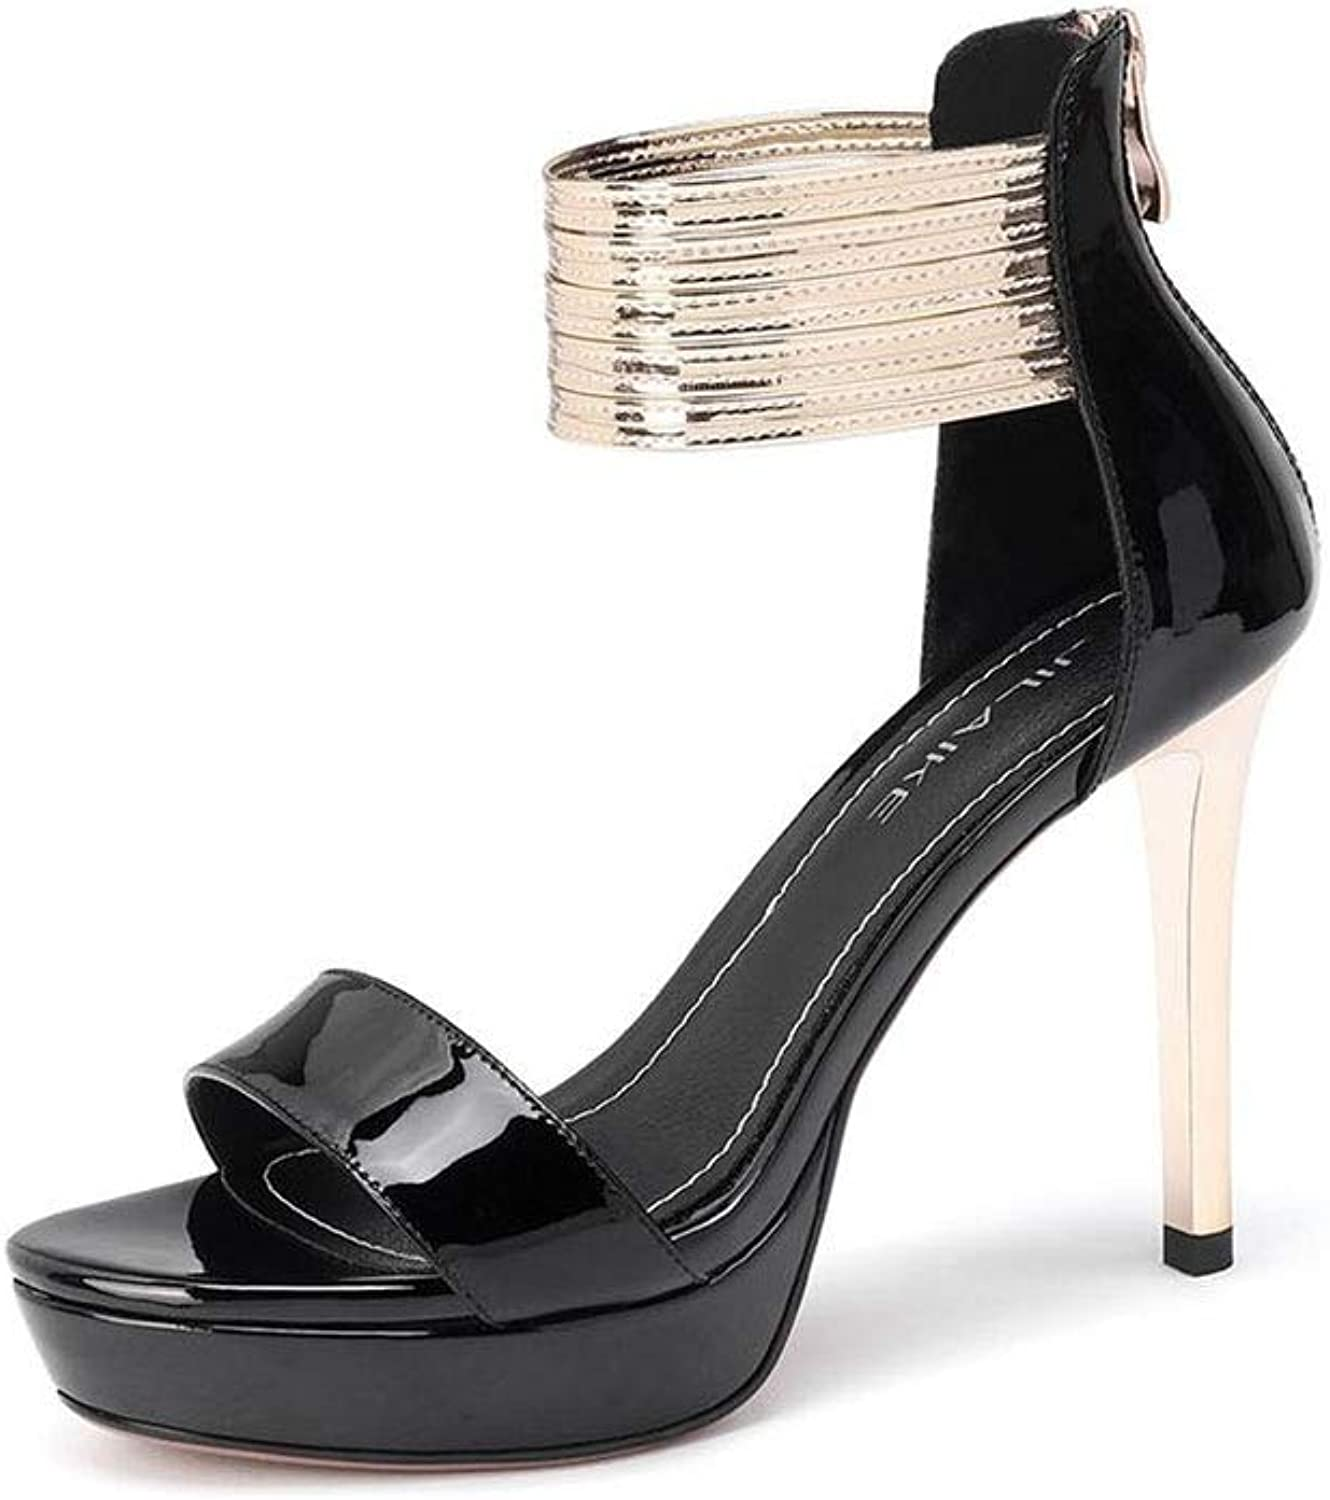 Dtutti Sautope Seali Donne Open Toe Stiletto Tacco Alto Fibbia Strappy Seali da Sposa Partito di Sera (Coloree   nero, Dimensione   EU 37 UK 4.5-5 CN37)